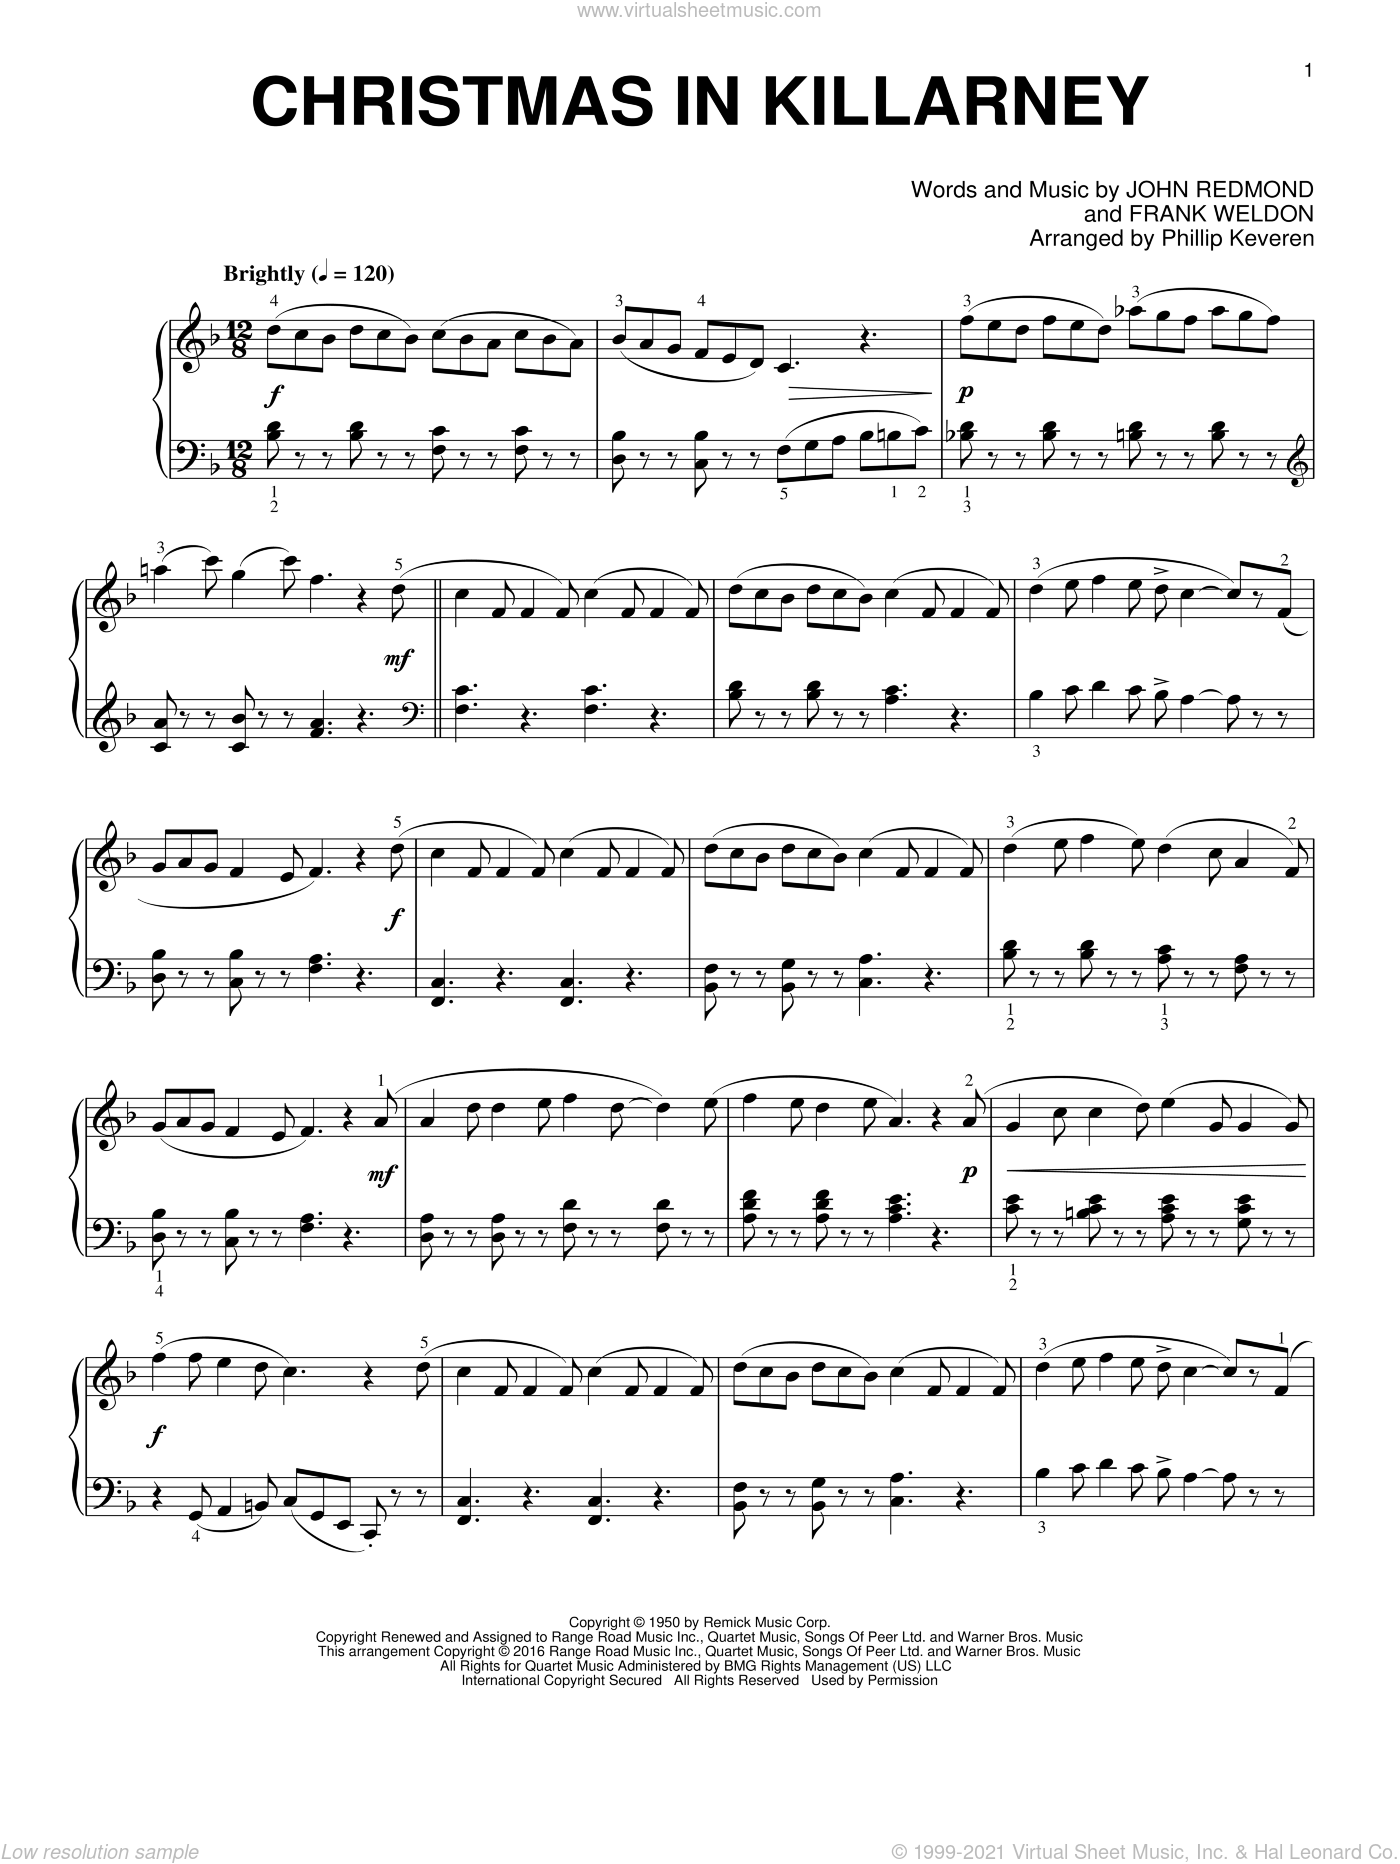 Christmas In Killarney sheet music for piano solo by John Redmond, Phillip Keveren and Frank Weldon, intermediate skill level